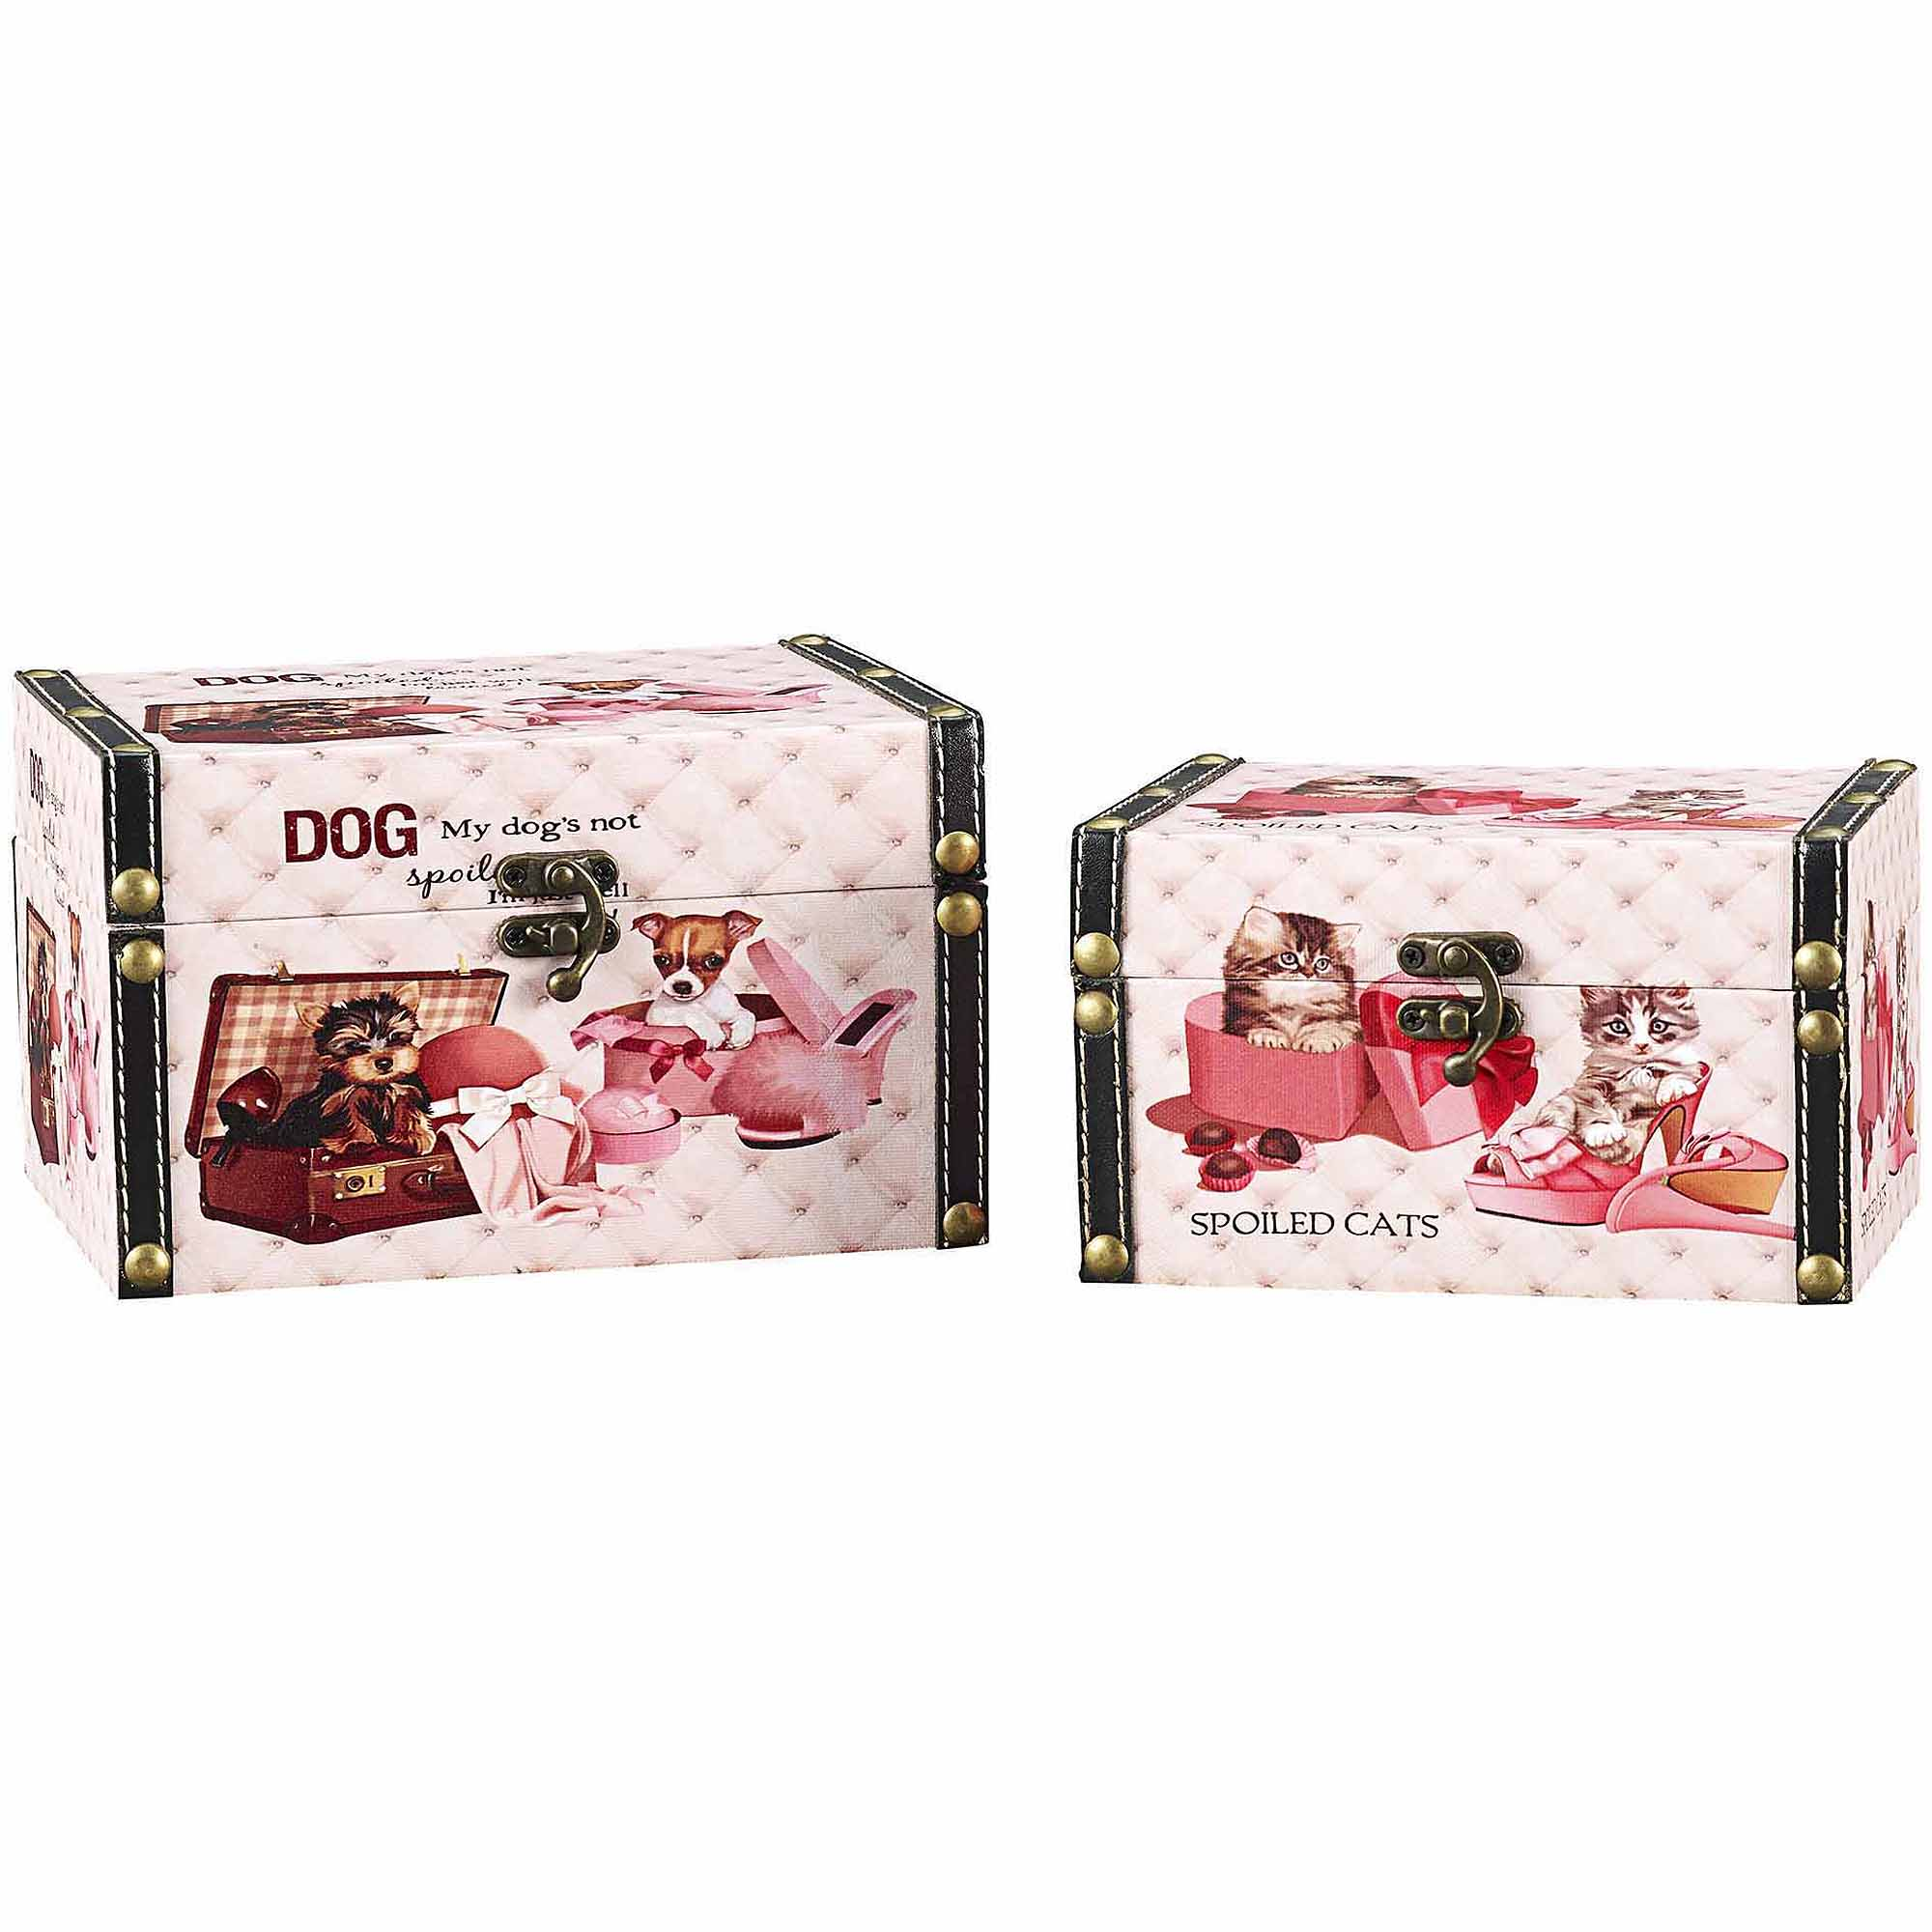 Household Essentials Decorative Storage Box, Cat and Dog Design, Set of 2